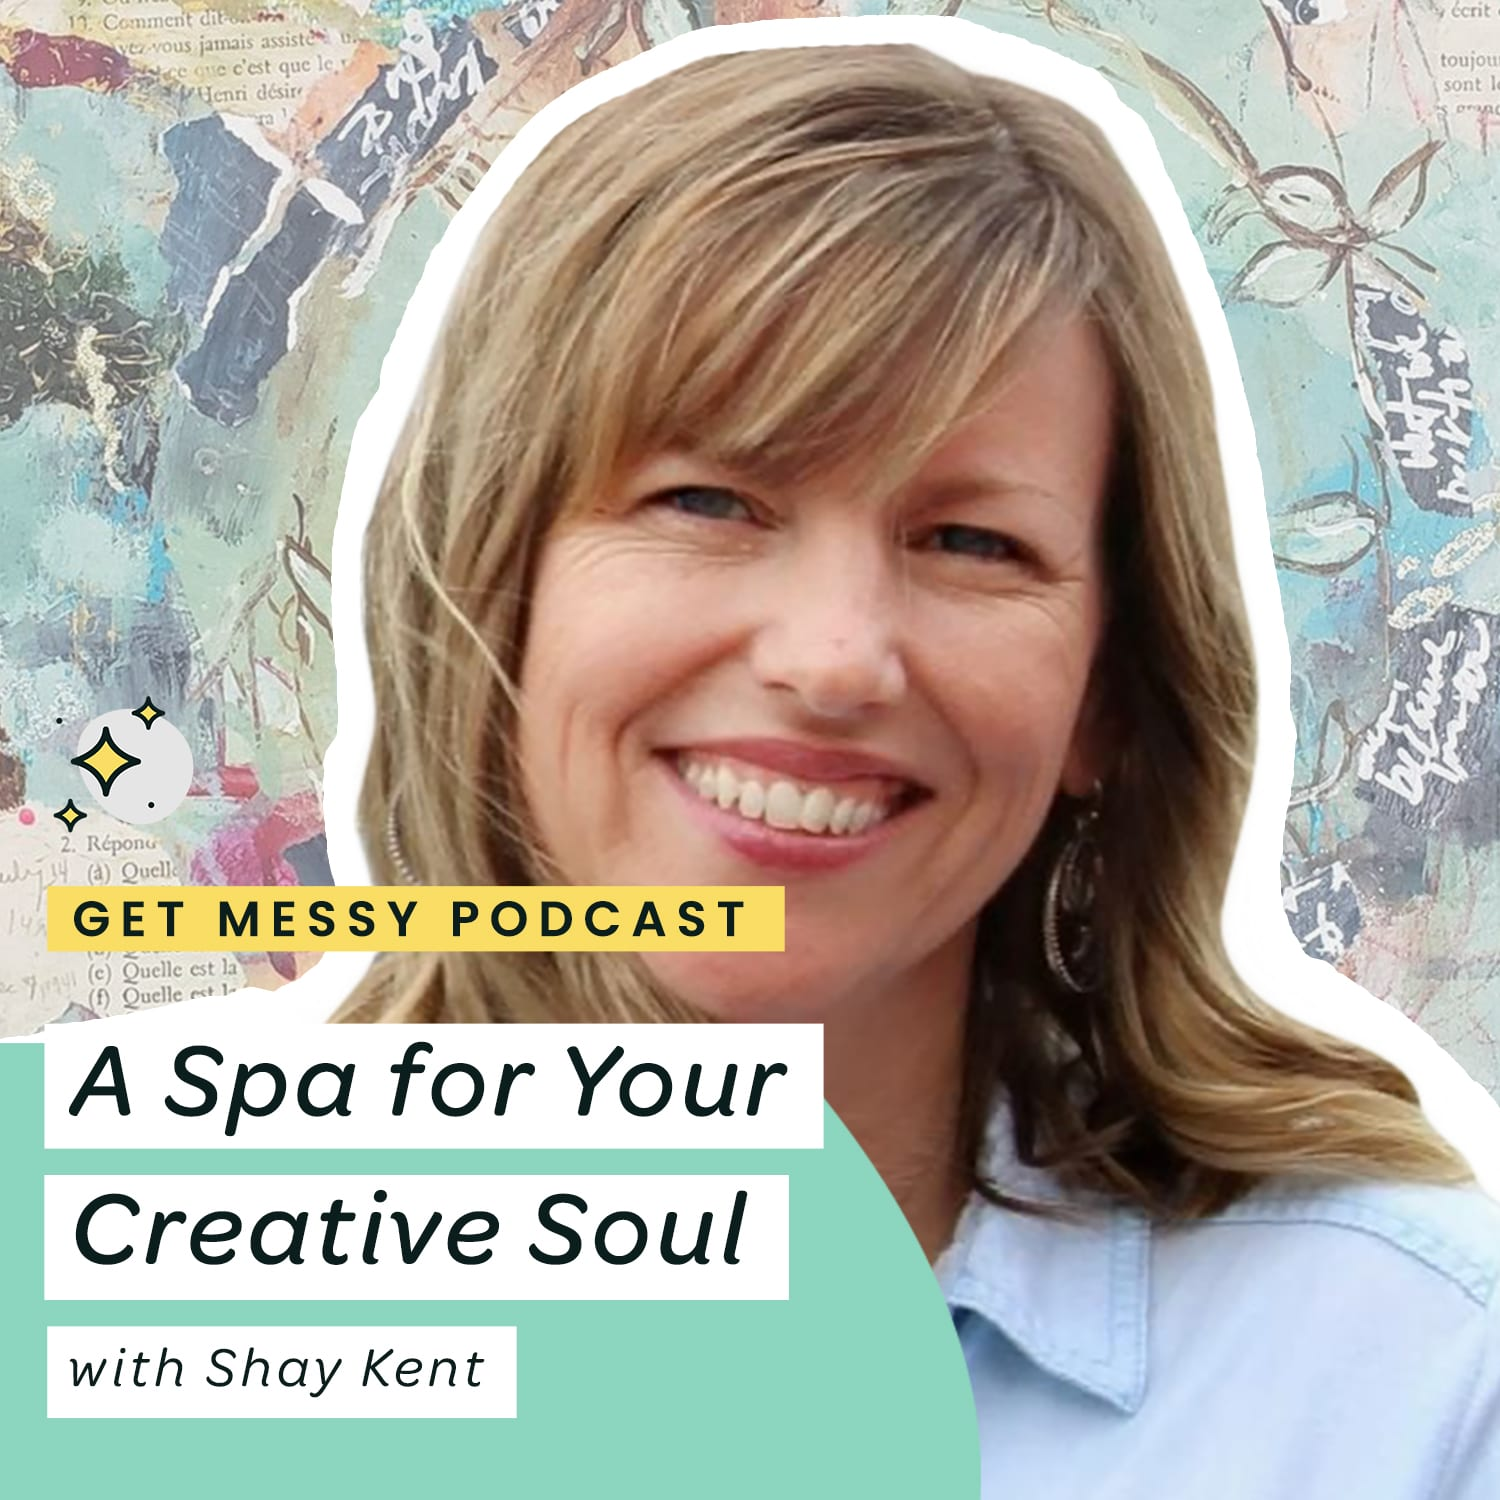 031 A Spa for Your Creative Soul with Shay Kent